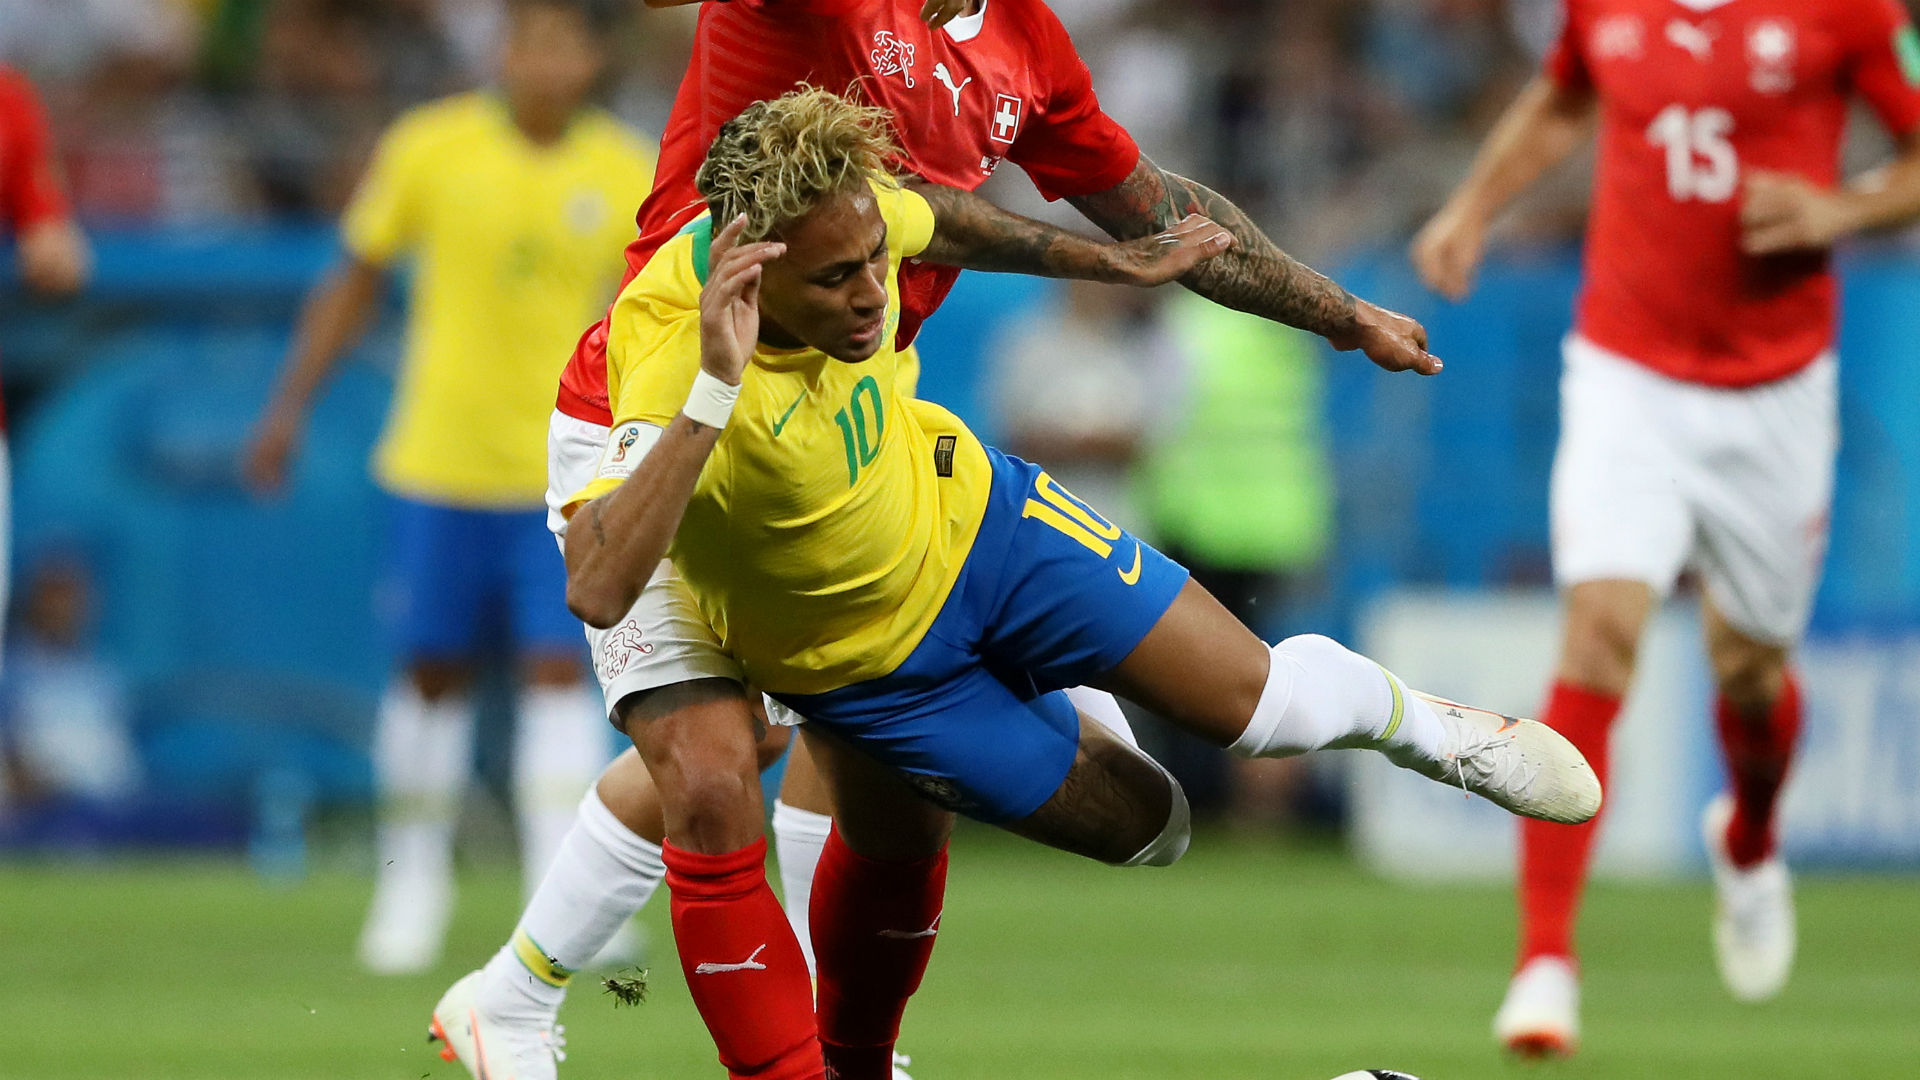 Two stoppage time goals save Brazil against Costa Rica